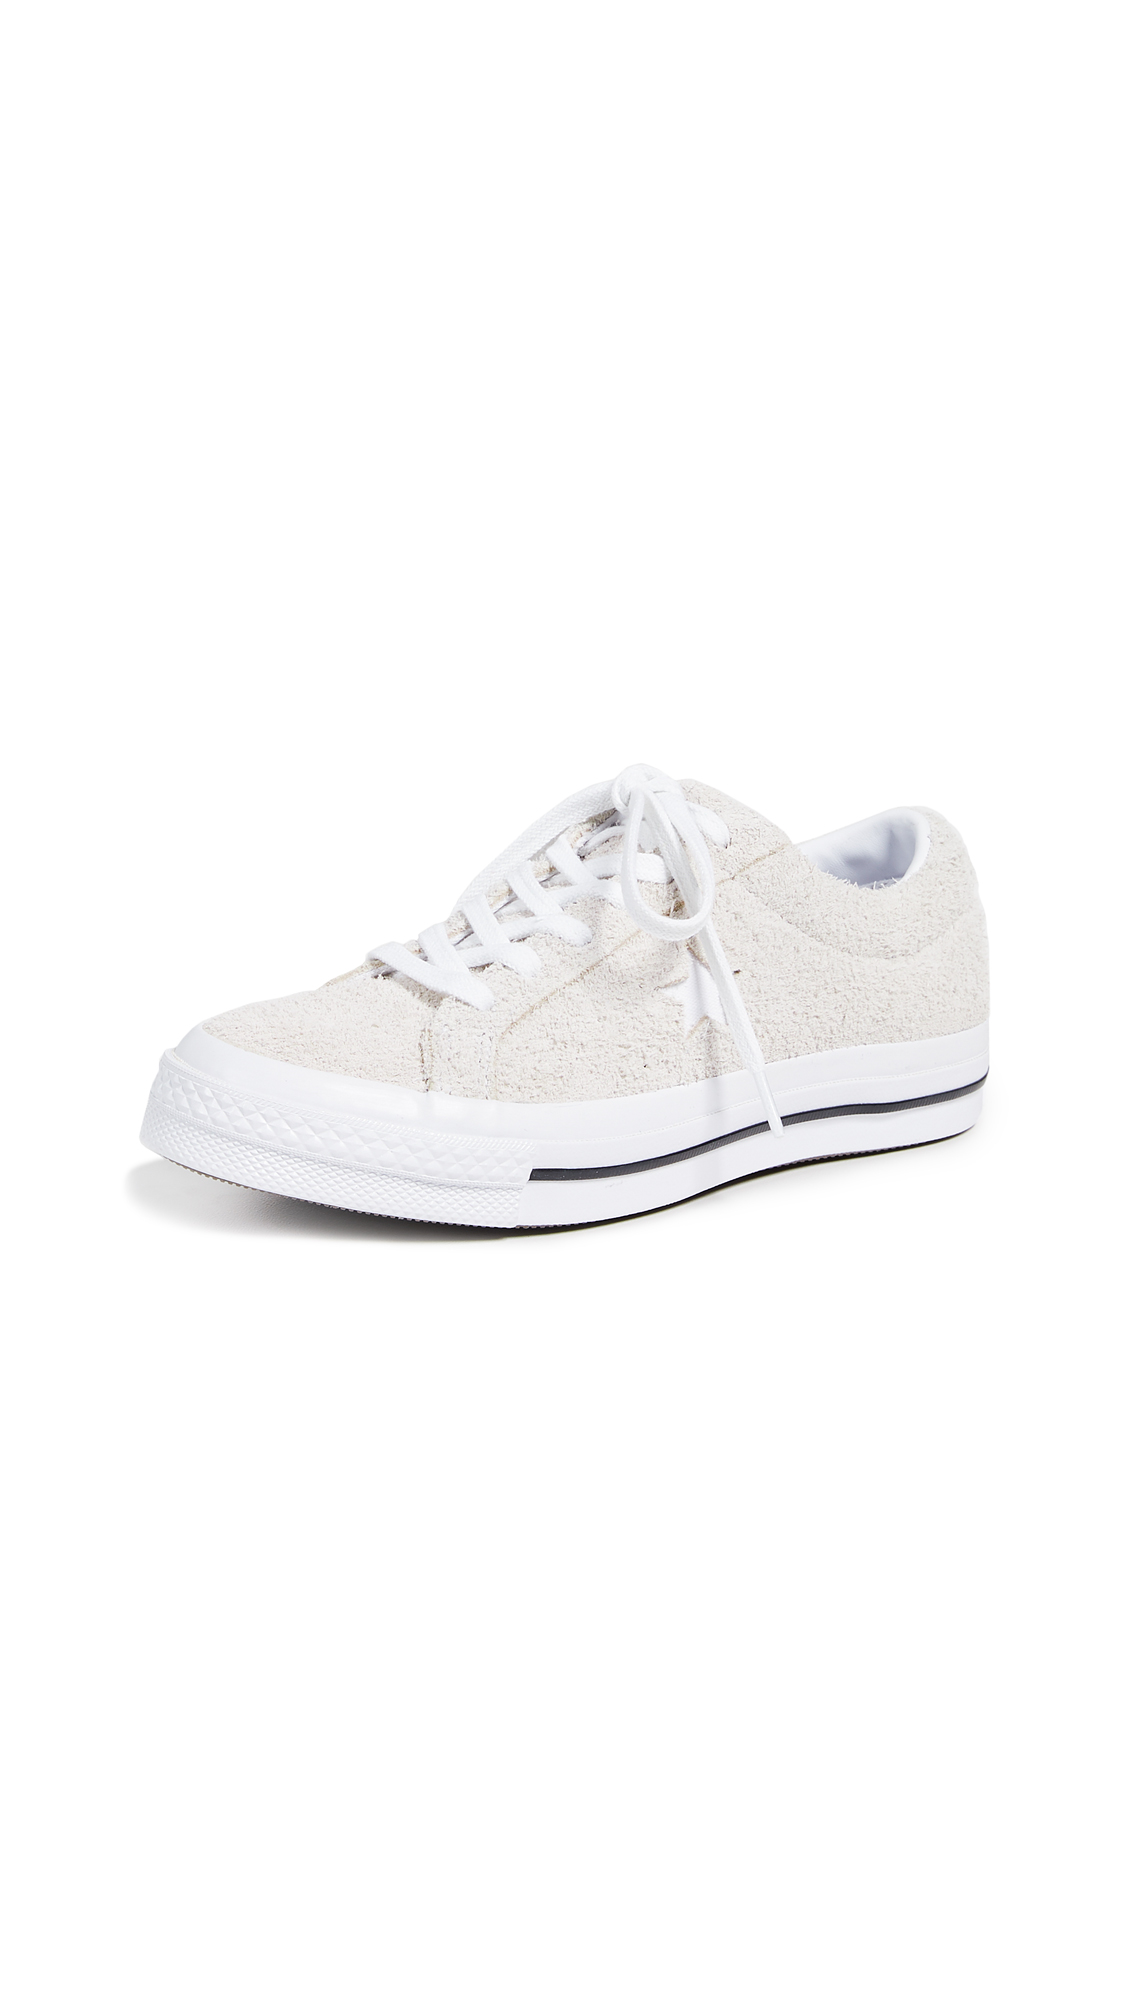 Converse One Star Ox Sneakers - White